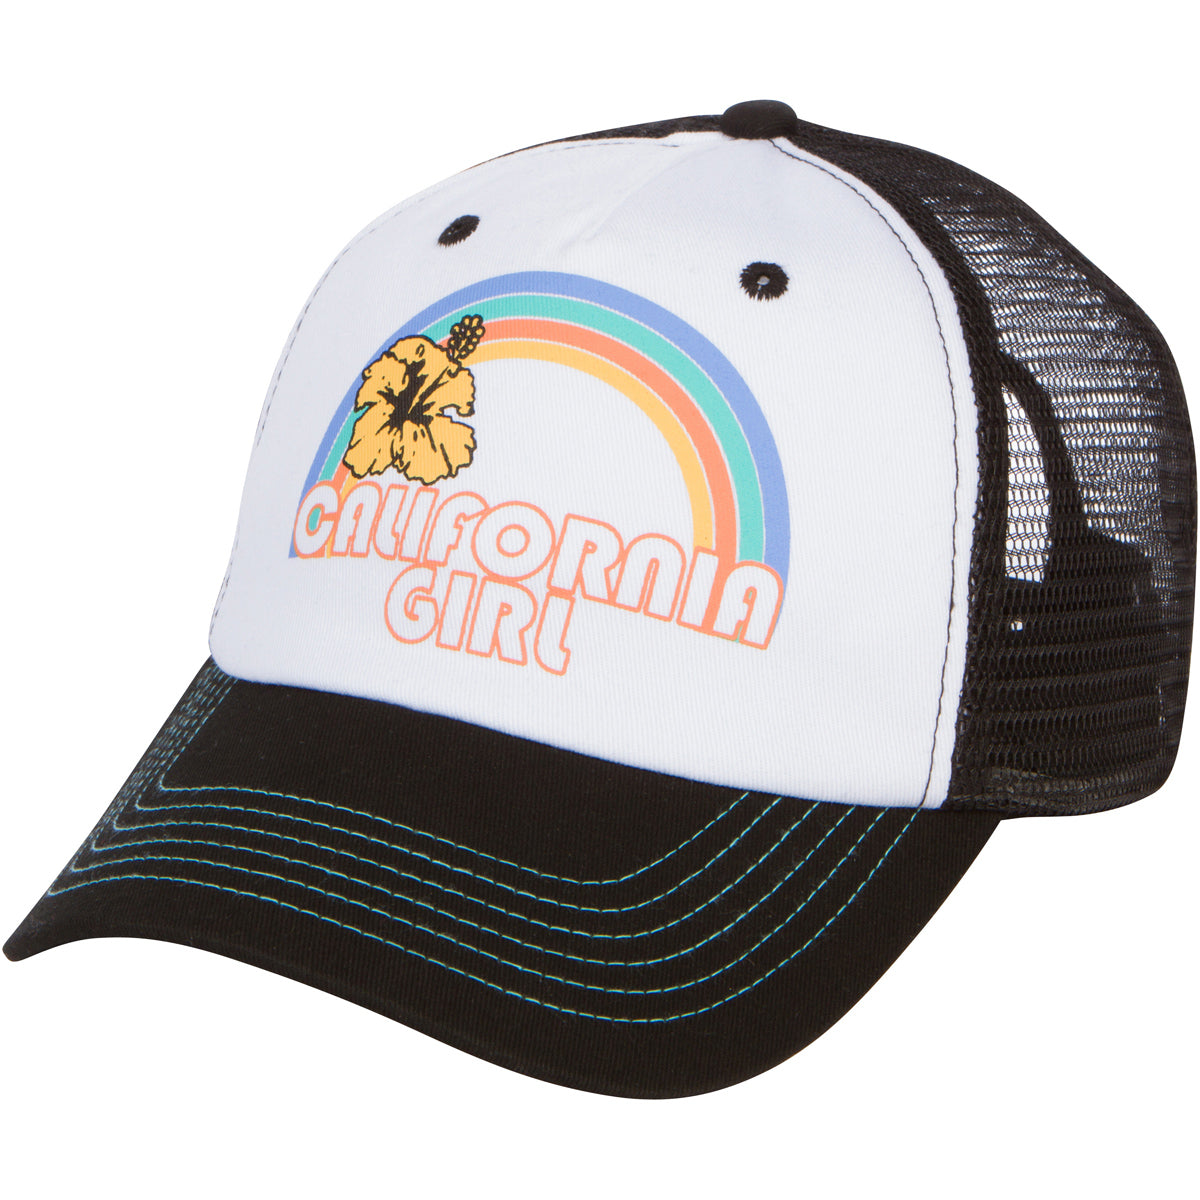 California Girl Trucker Snapback Hat - Black/White